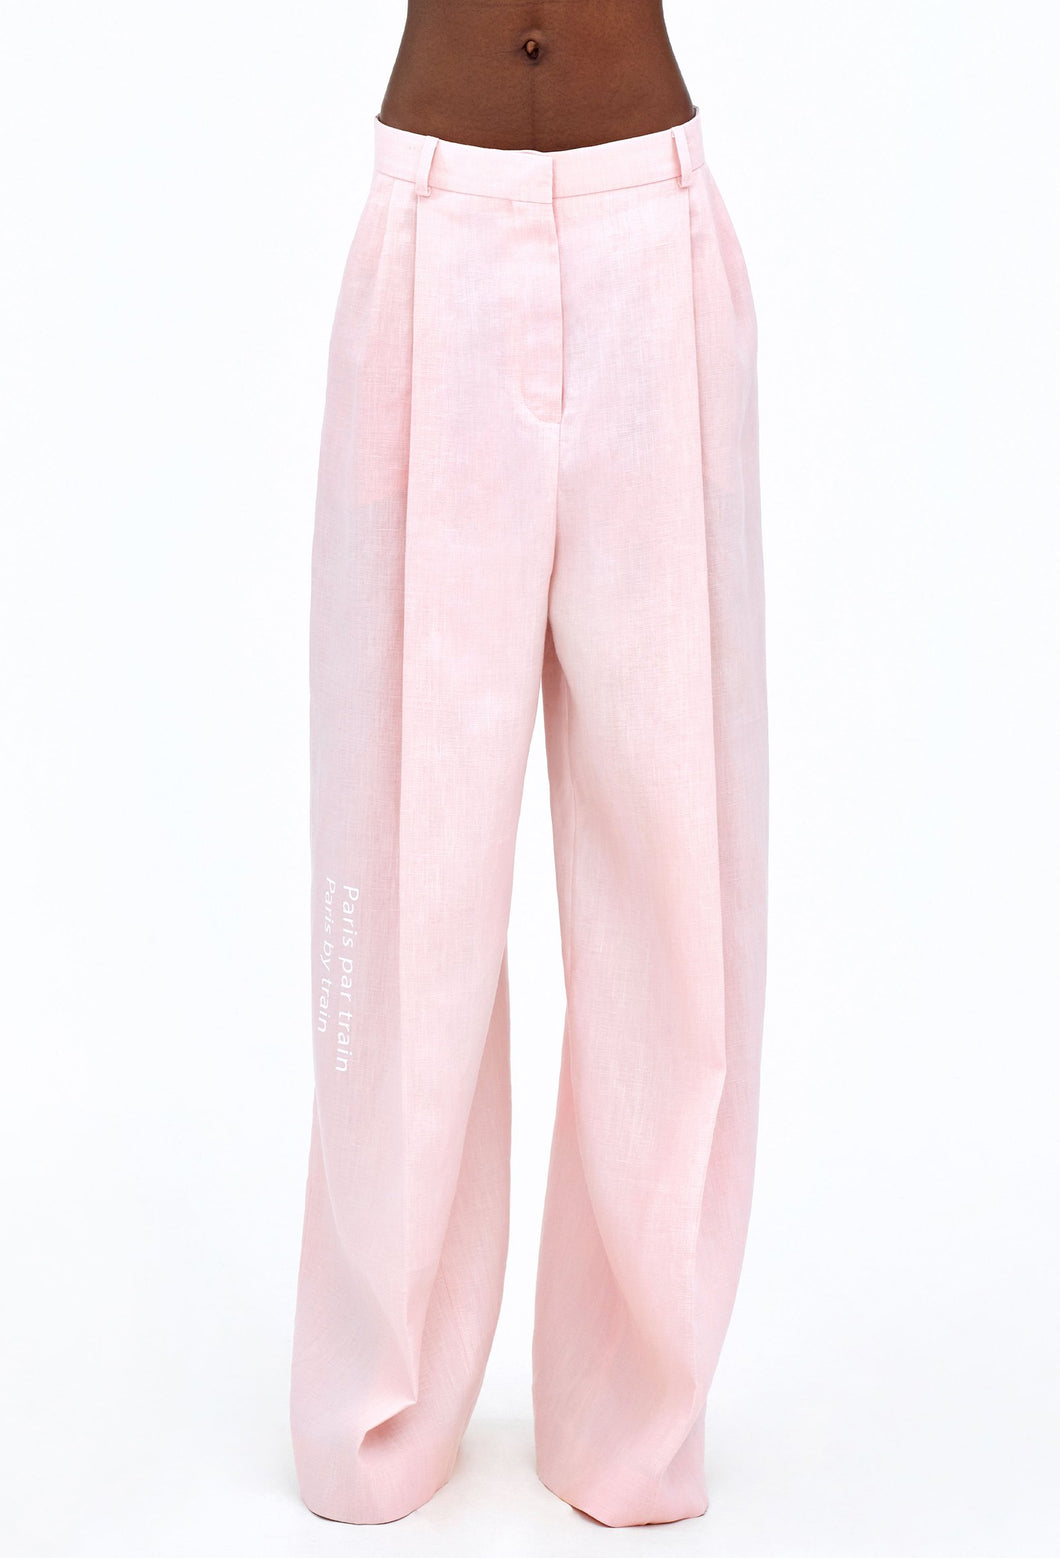 Tattoo Sweaters Pink Linen Pants